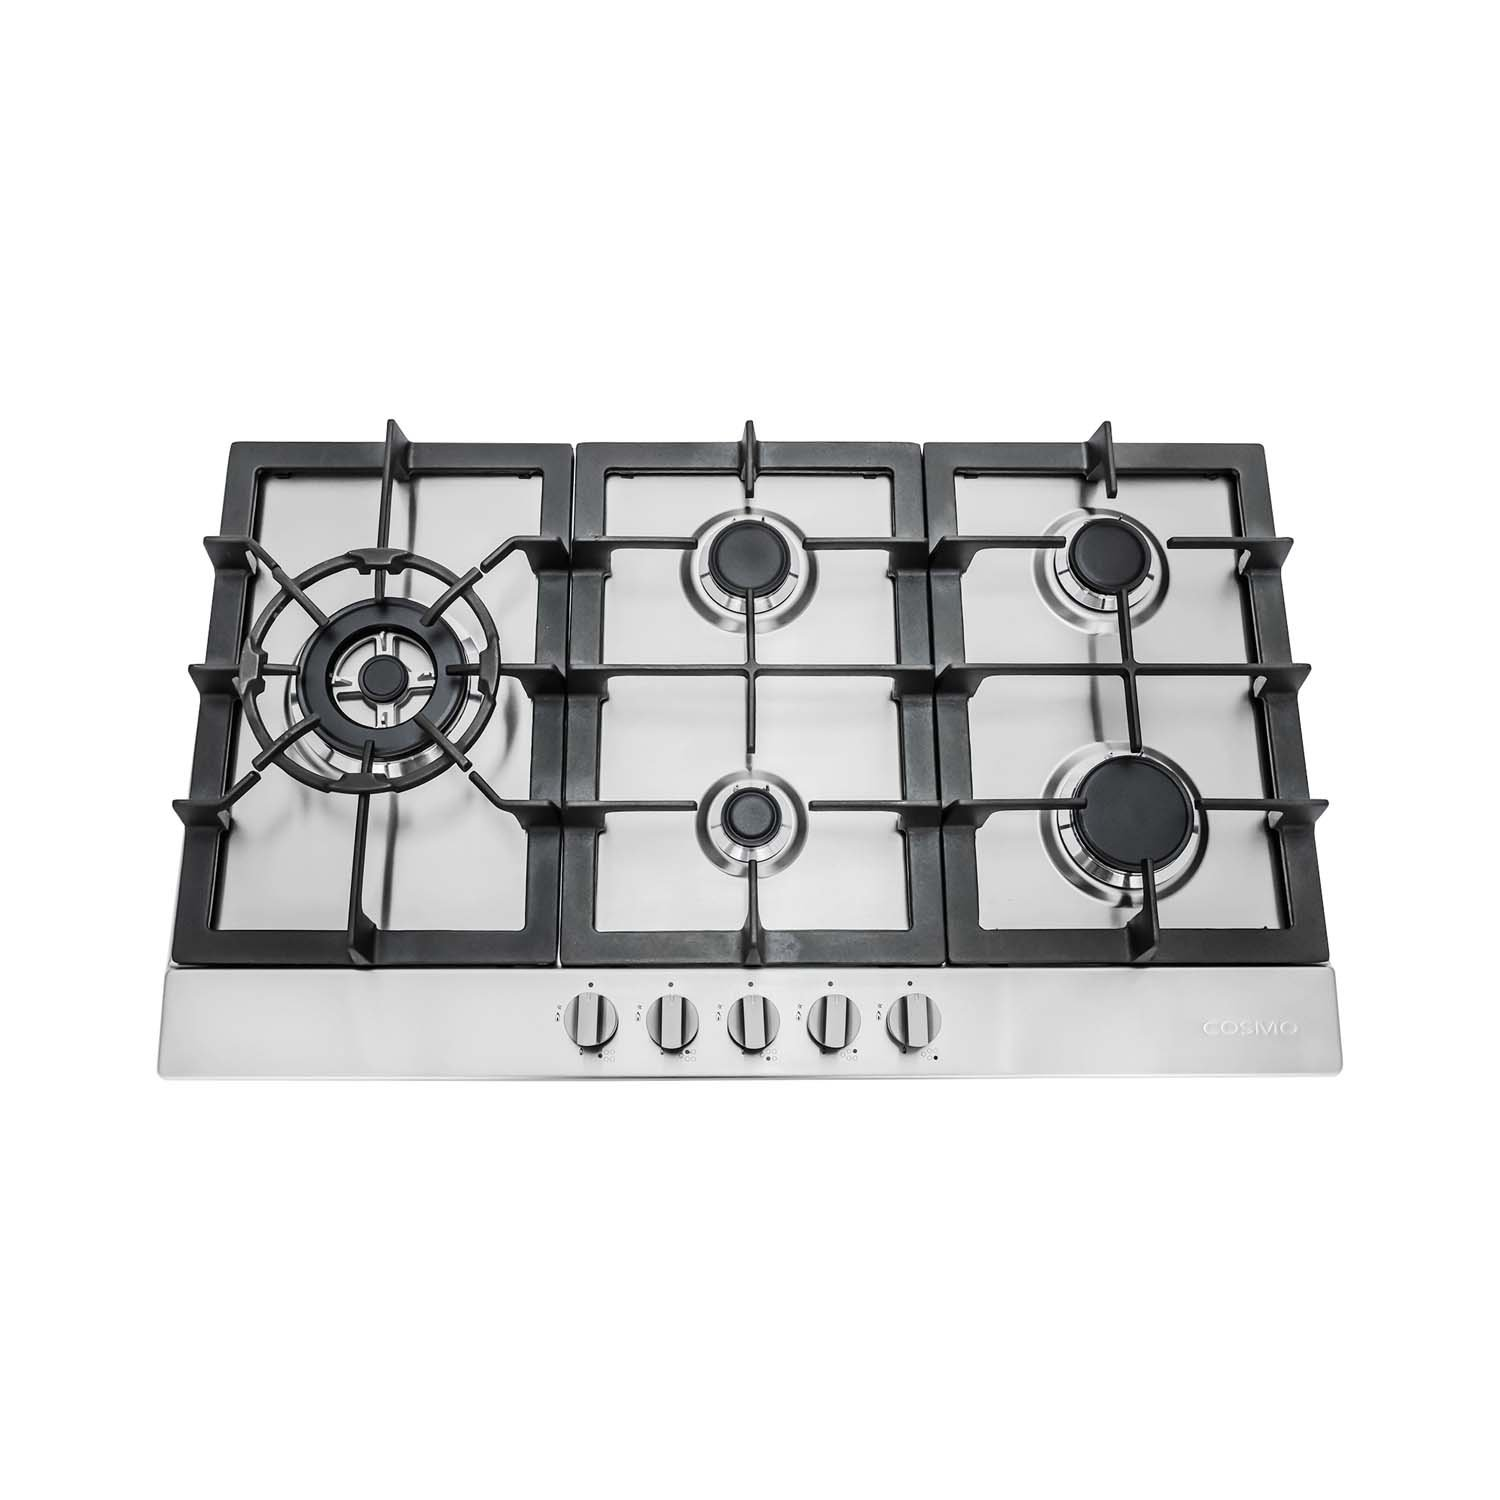 30 in. Stainless Steel Gas Cooktop with 5 Sealed Burners (850SLTX-E) Cosmo Kitchen Products